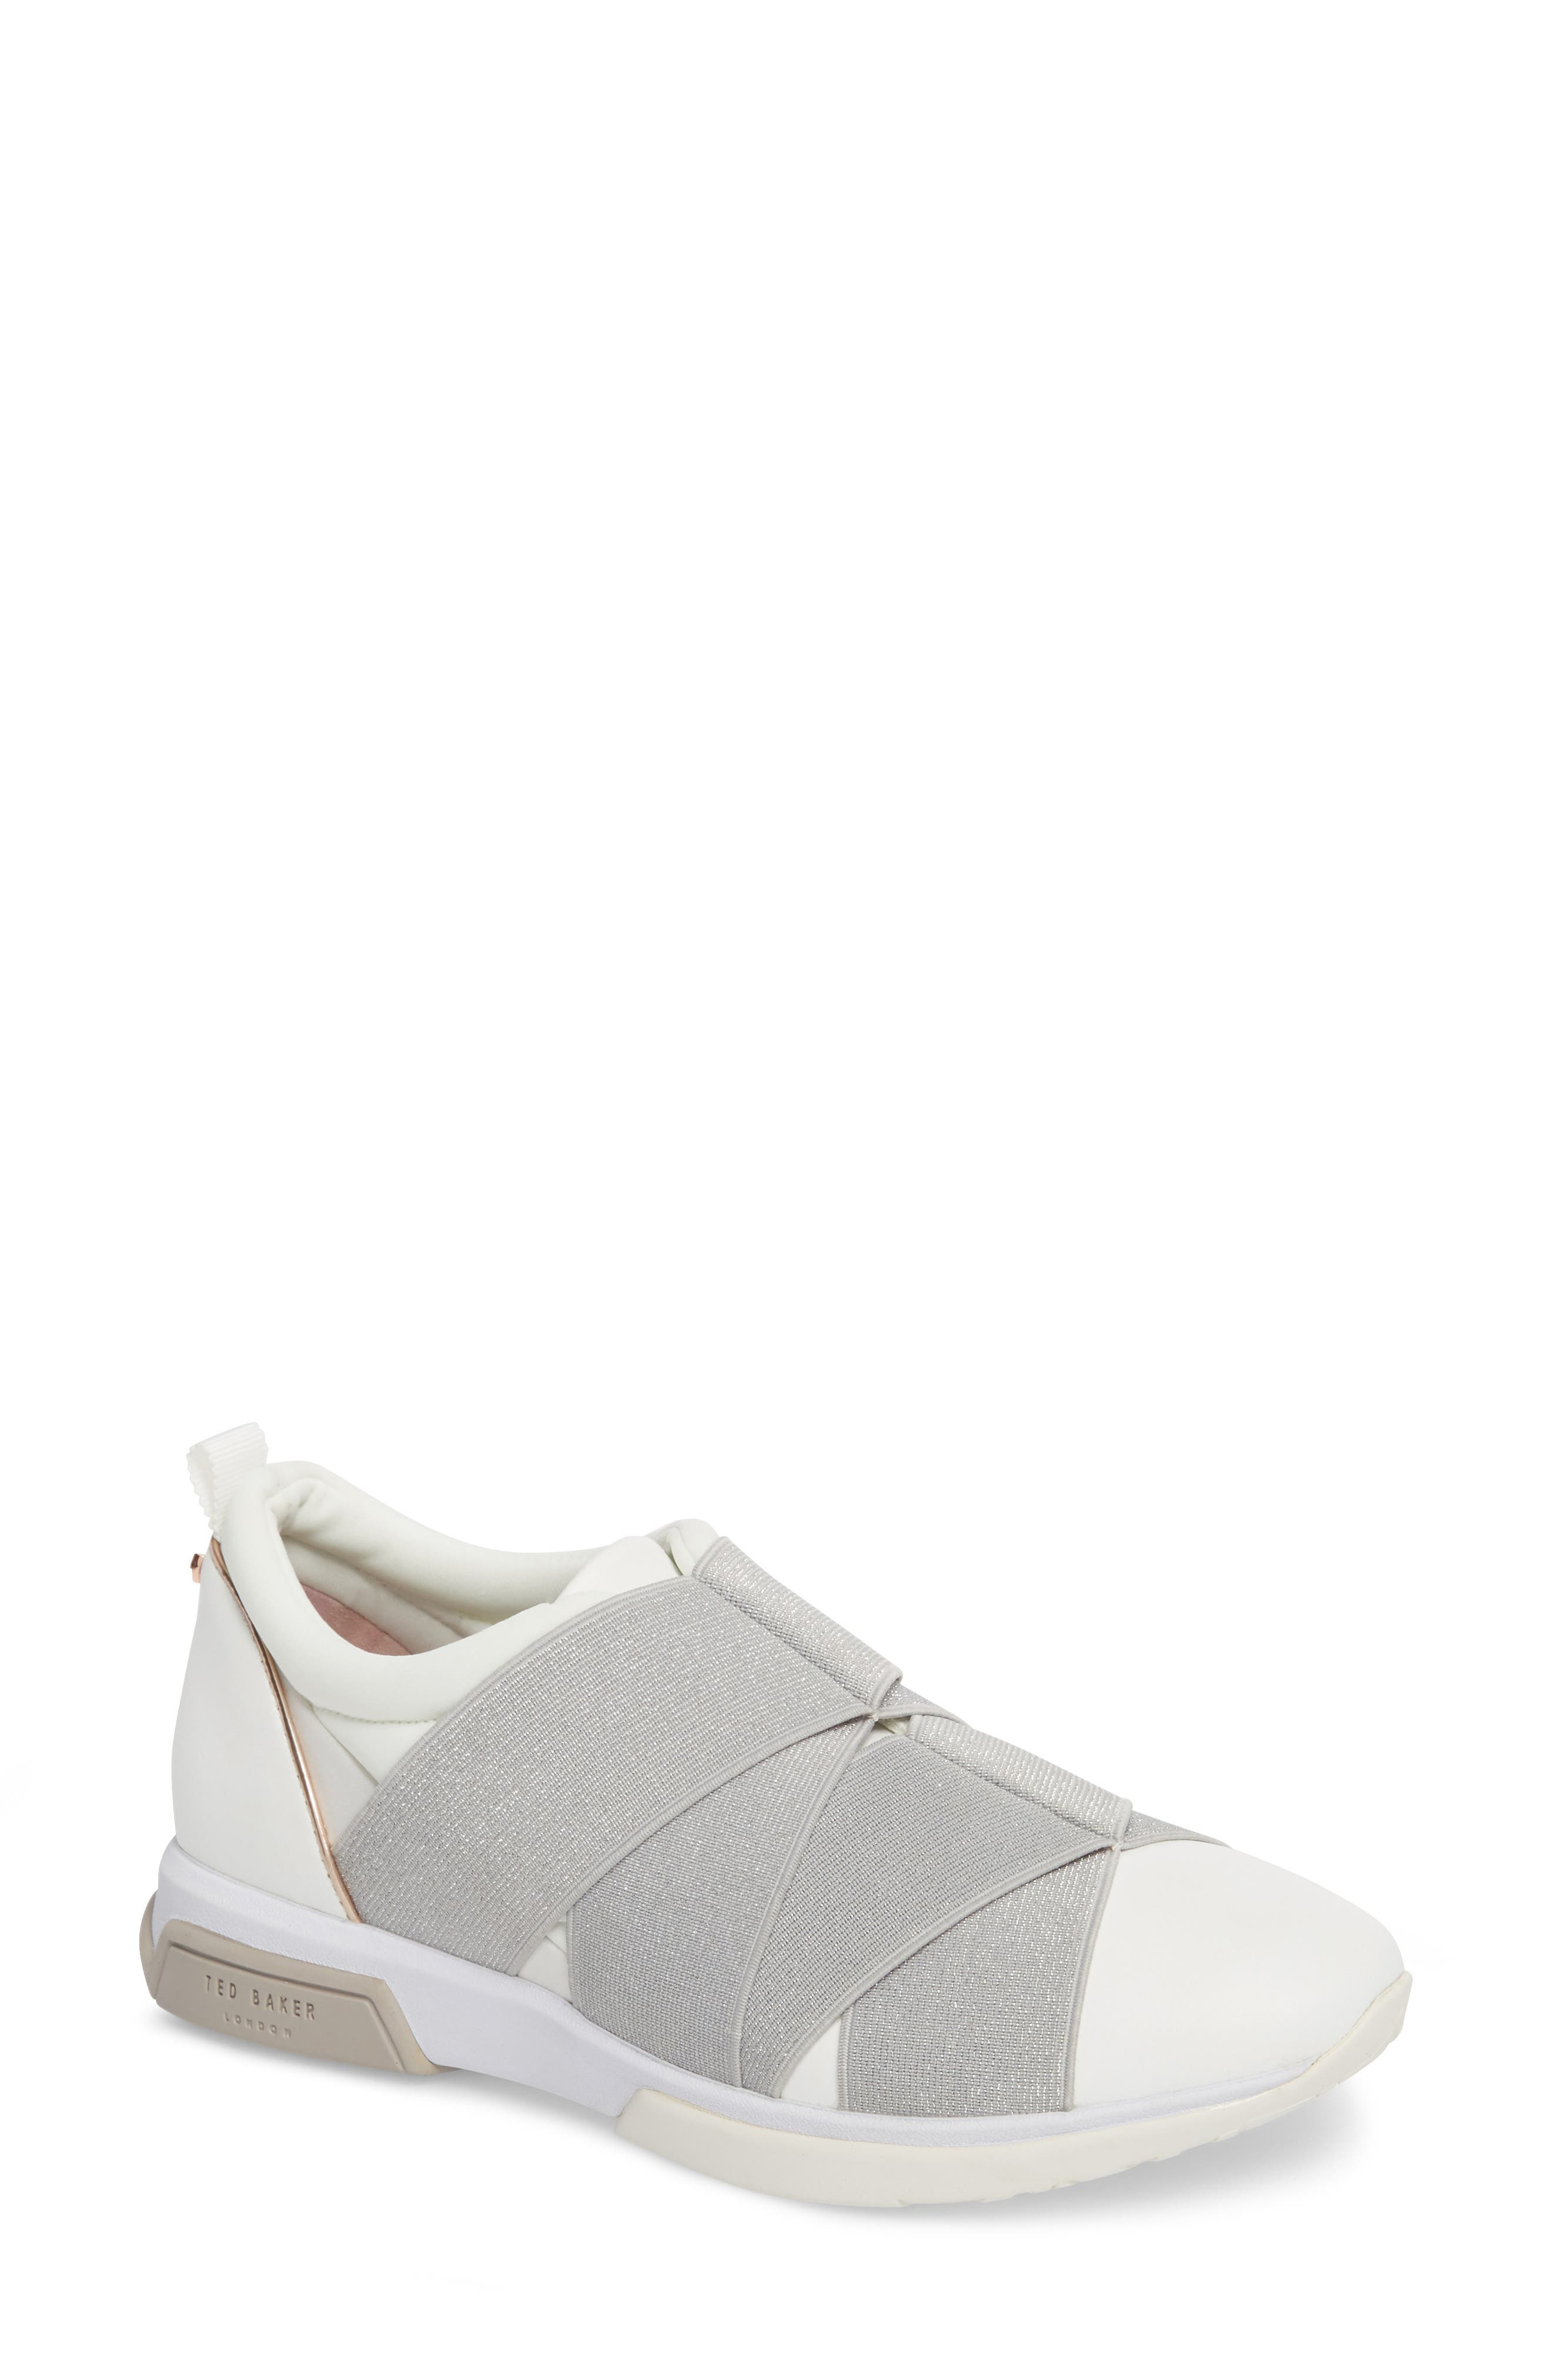 Queane Sneaker,                             Main thumbnail 1, color,                             WHITE/ SILVER LEATHER